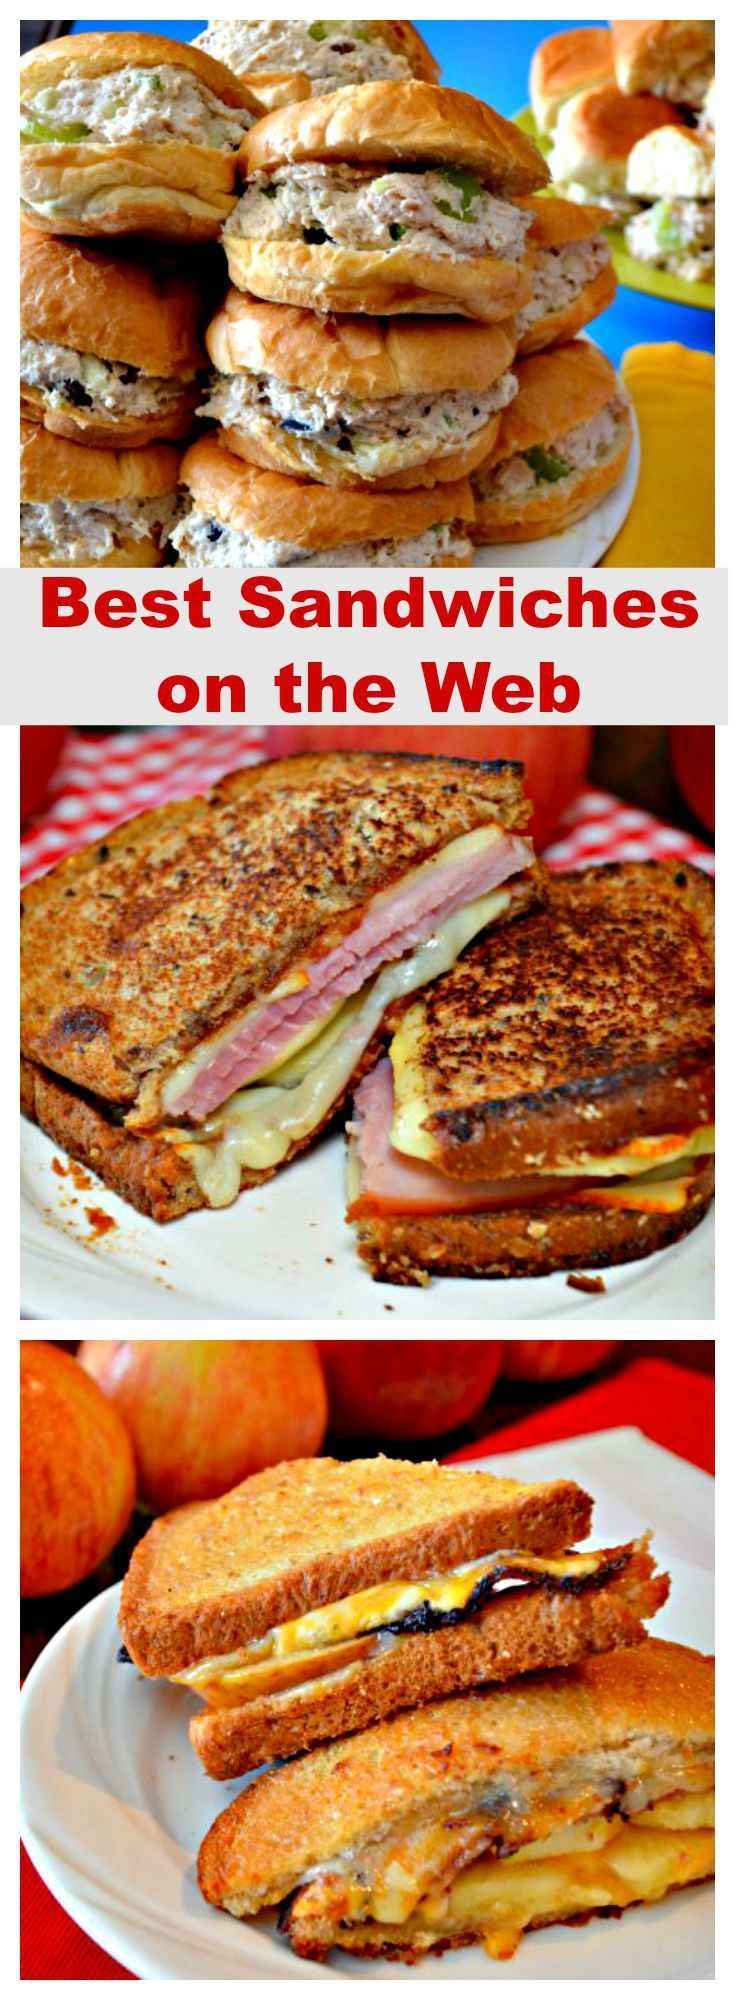 Best Sandwiches on the Web - I rounded up some of the best hot and cold…